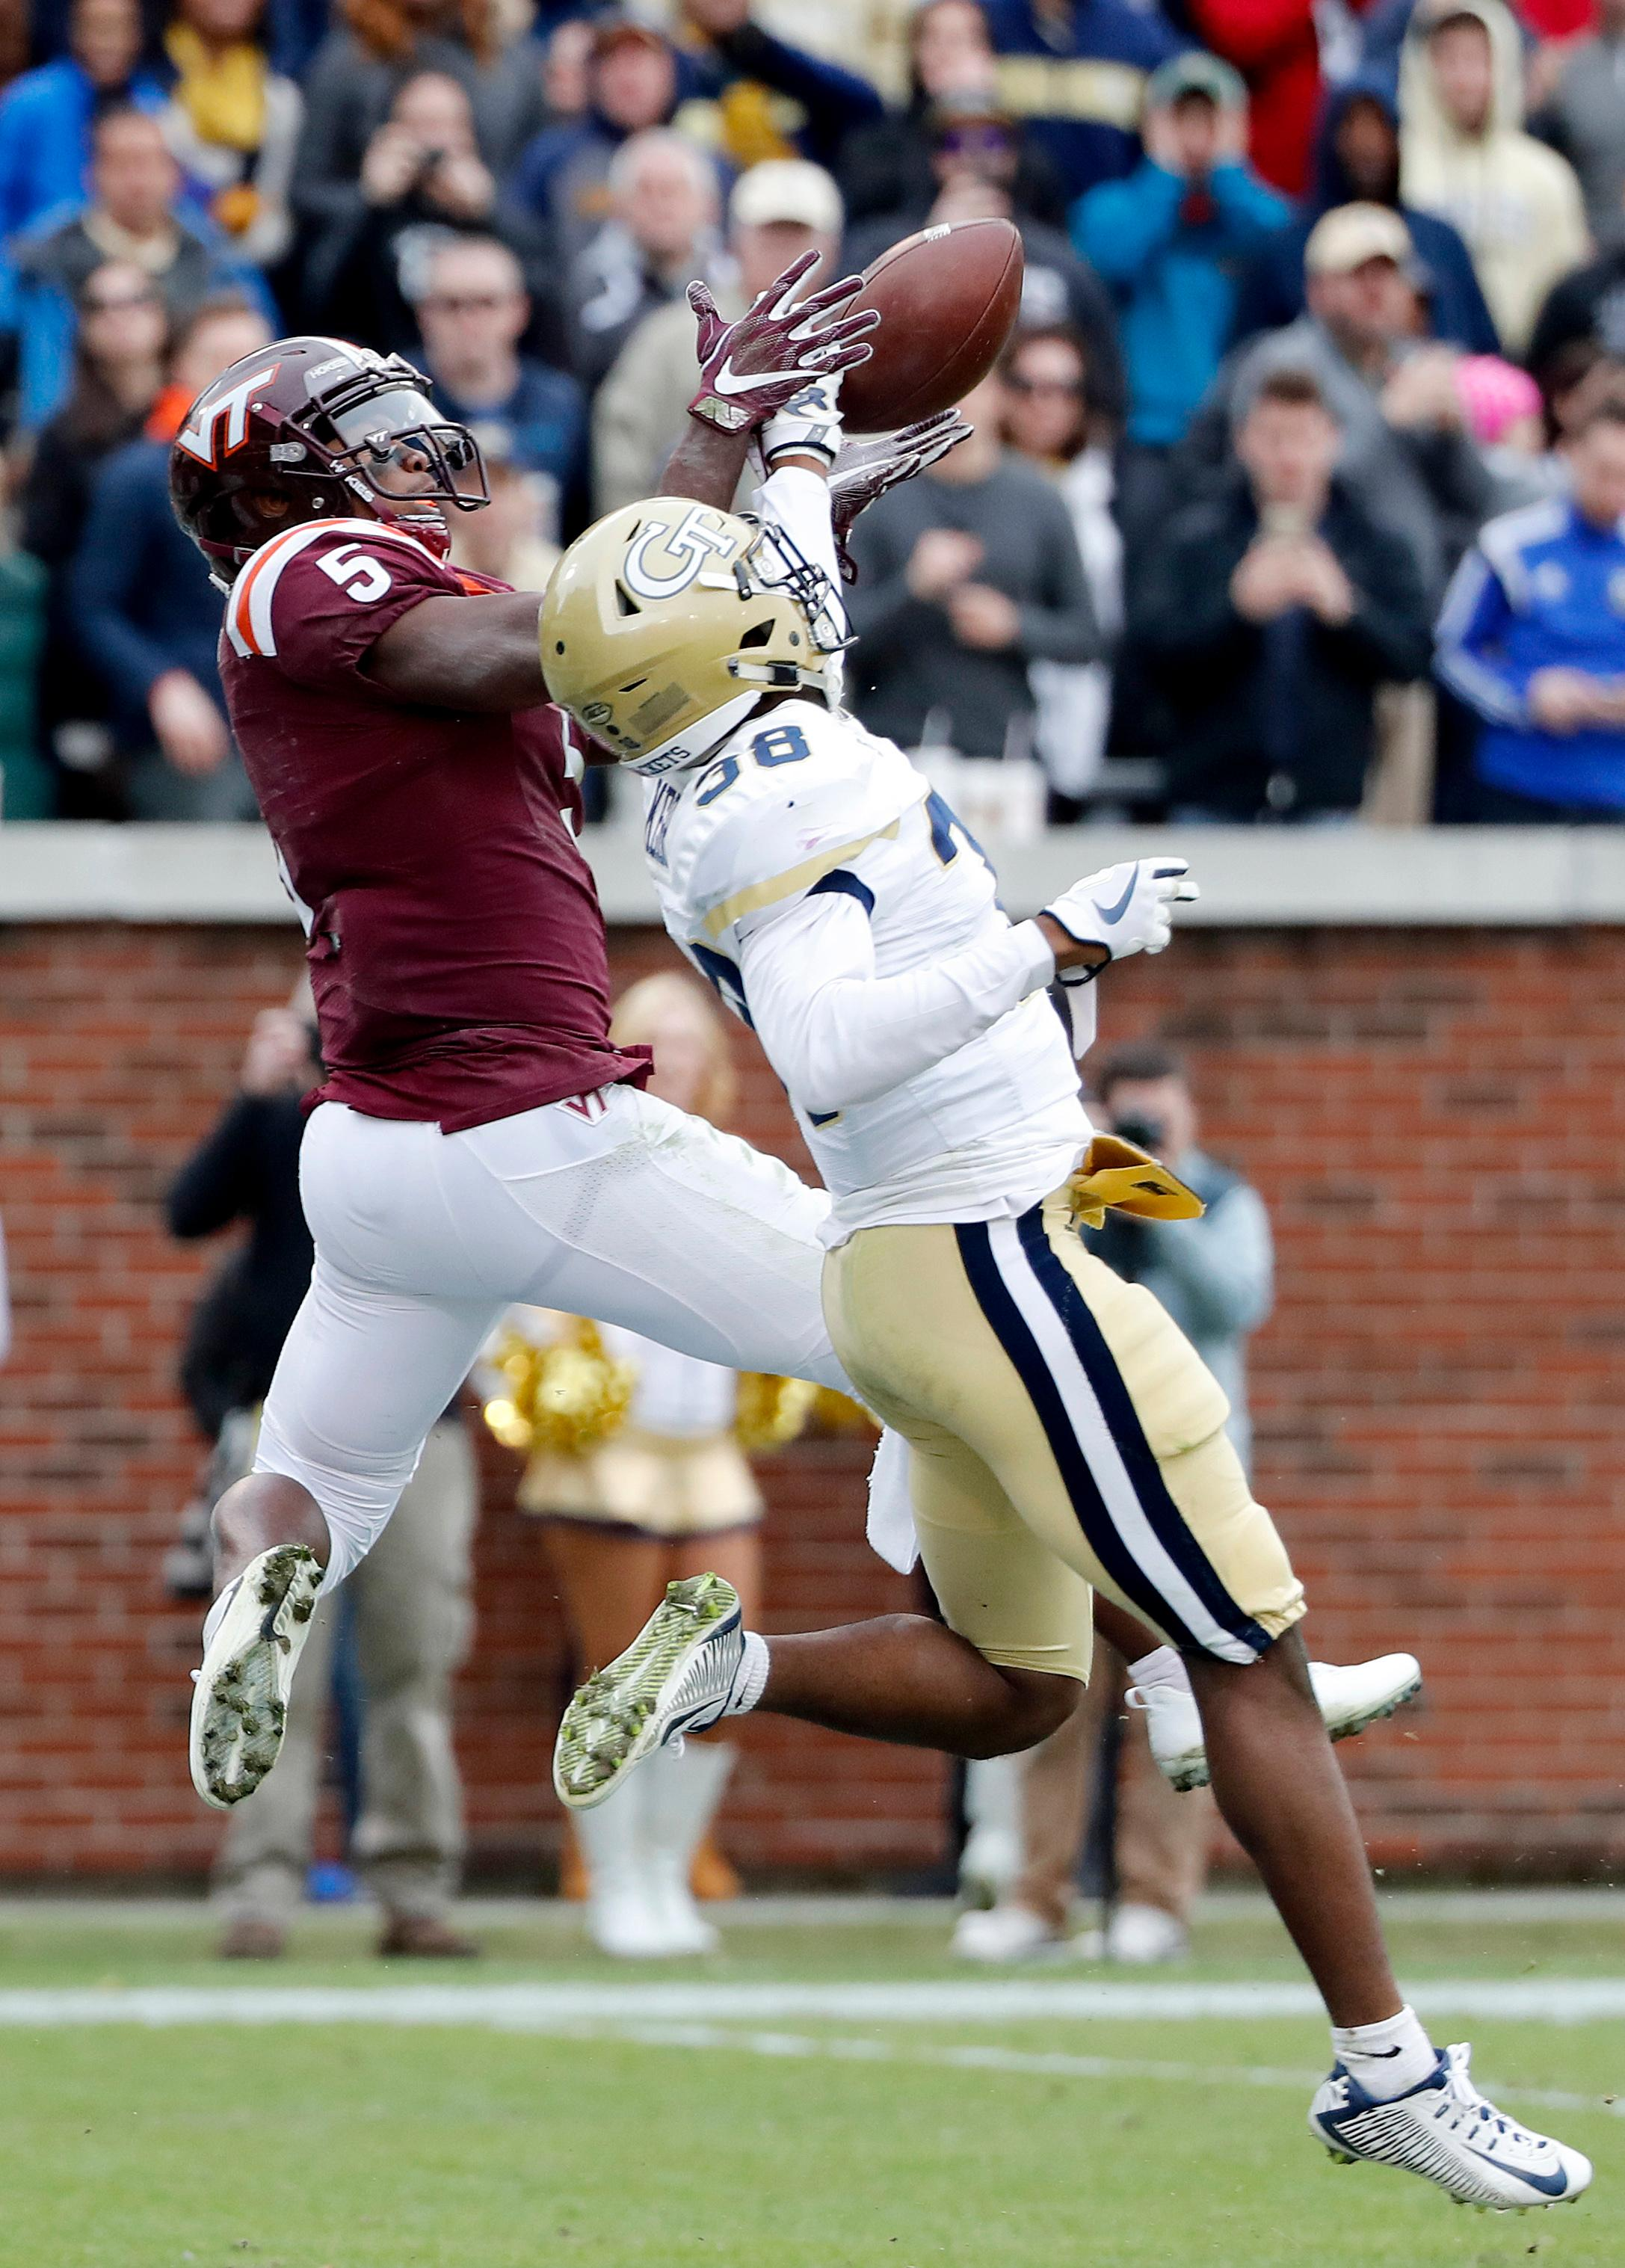 Georgia Tech's Ajani Kerr, right, breaks up a pass intended for Virginia Tech's Cam Phillips late in the fourth quarter of an NCAA college football game in Atlanta, Saturday, Nov. 11, 2017. Georgia Tech won 28-22. (AP Photo/David Goldman)